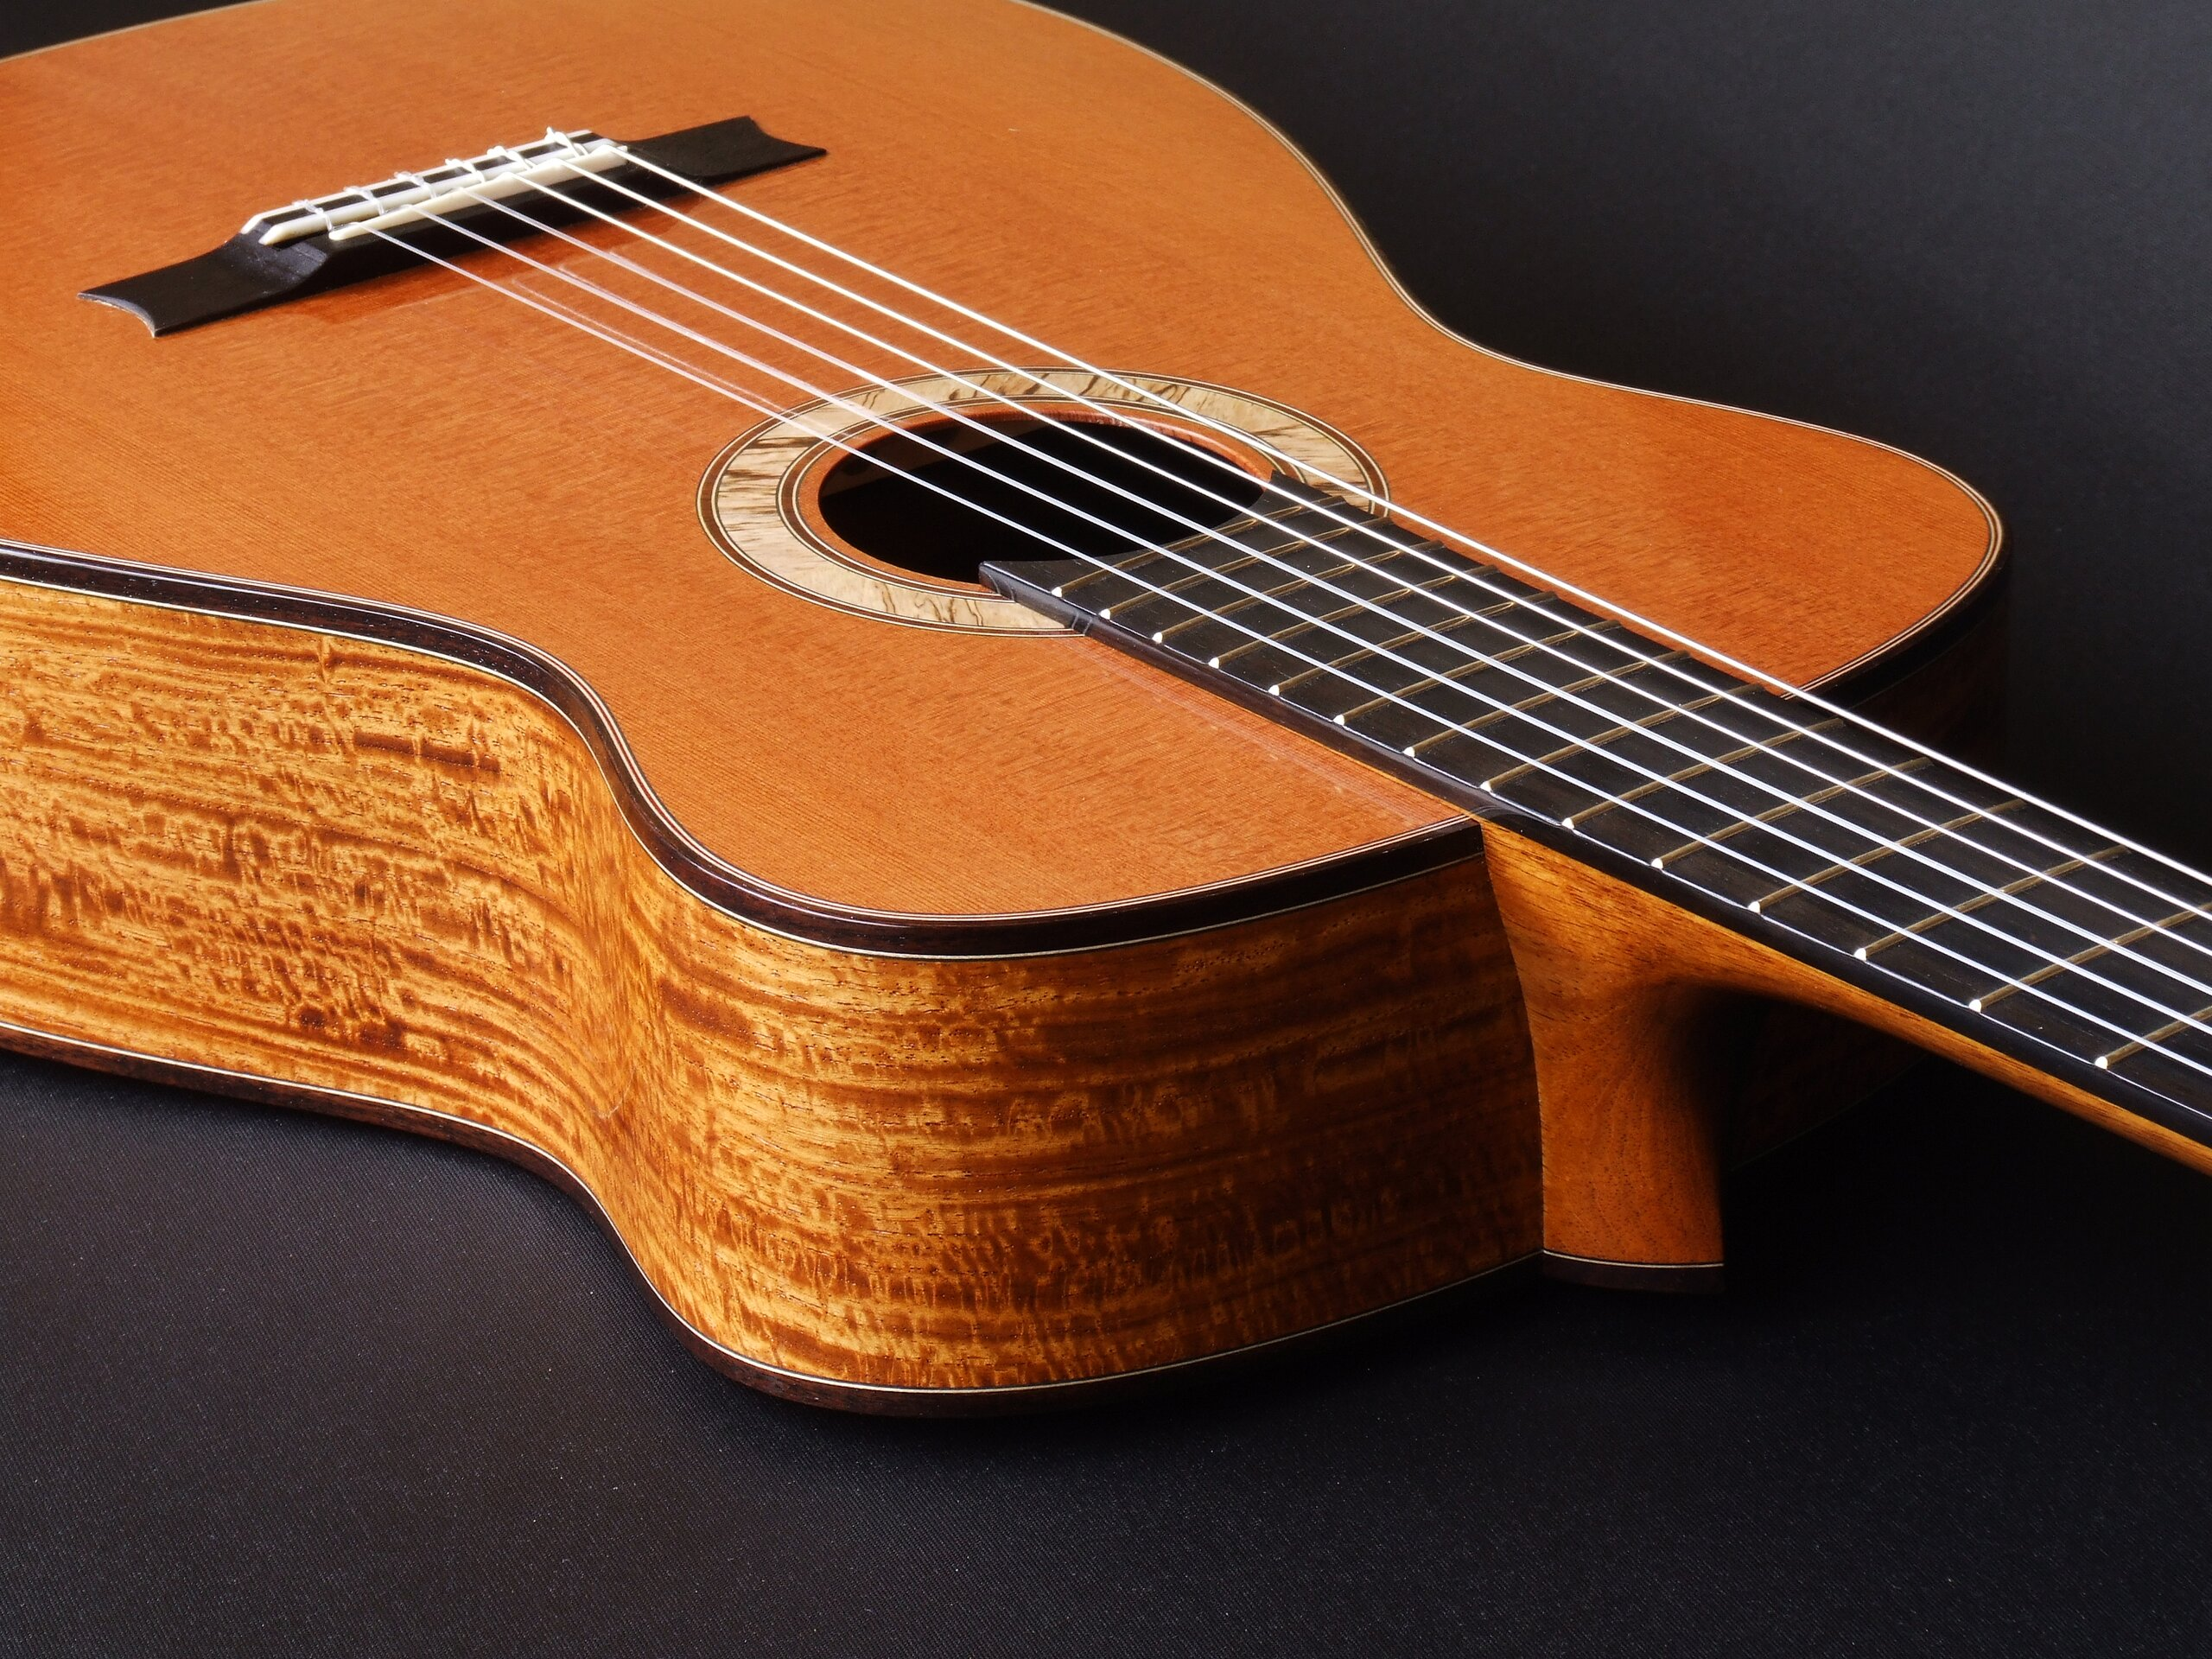 Gore redwood and New Guinea rosewood neo-classical guitar, spalted blackwood rosette